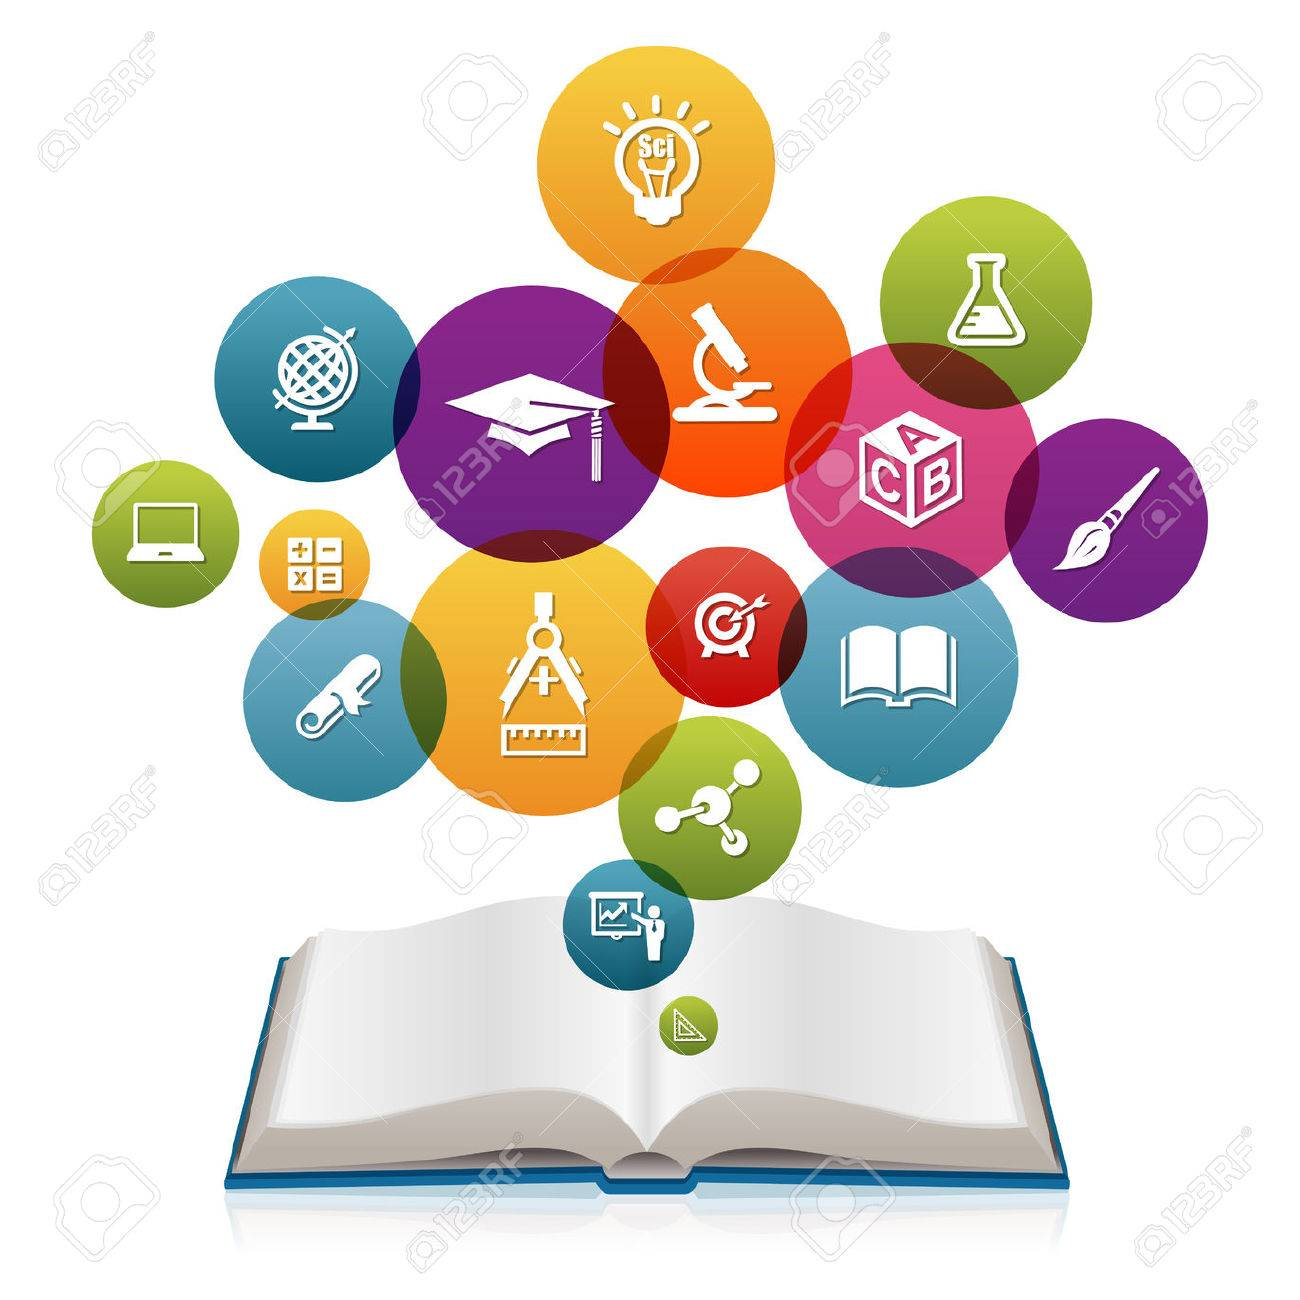 Open book with Education icons Stock Photo - 43199811